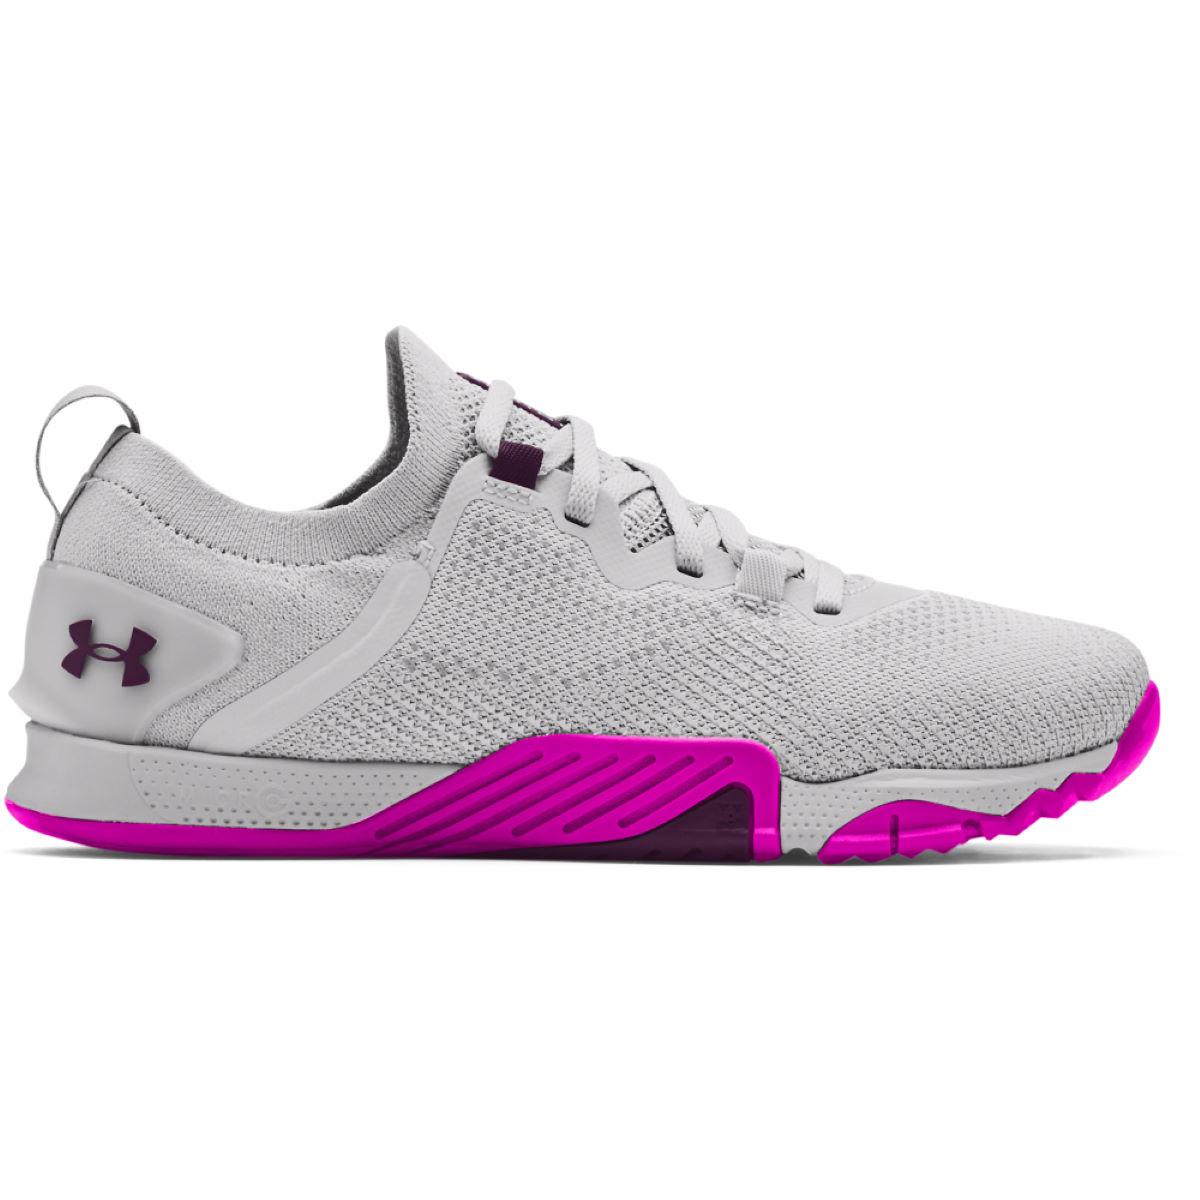 Under Armour Womens Tribase Reign 3 Gym Shoes - Uk 7.5